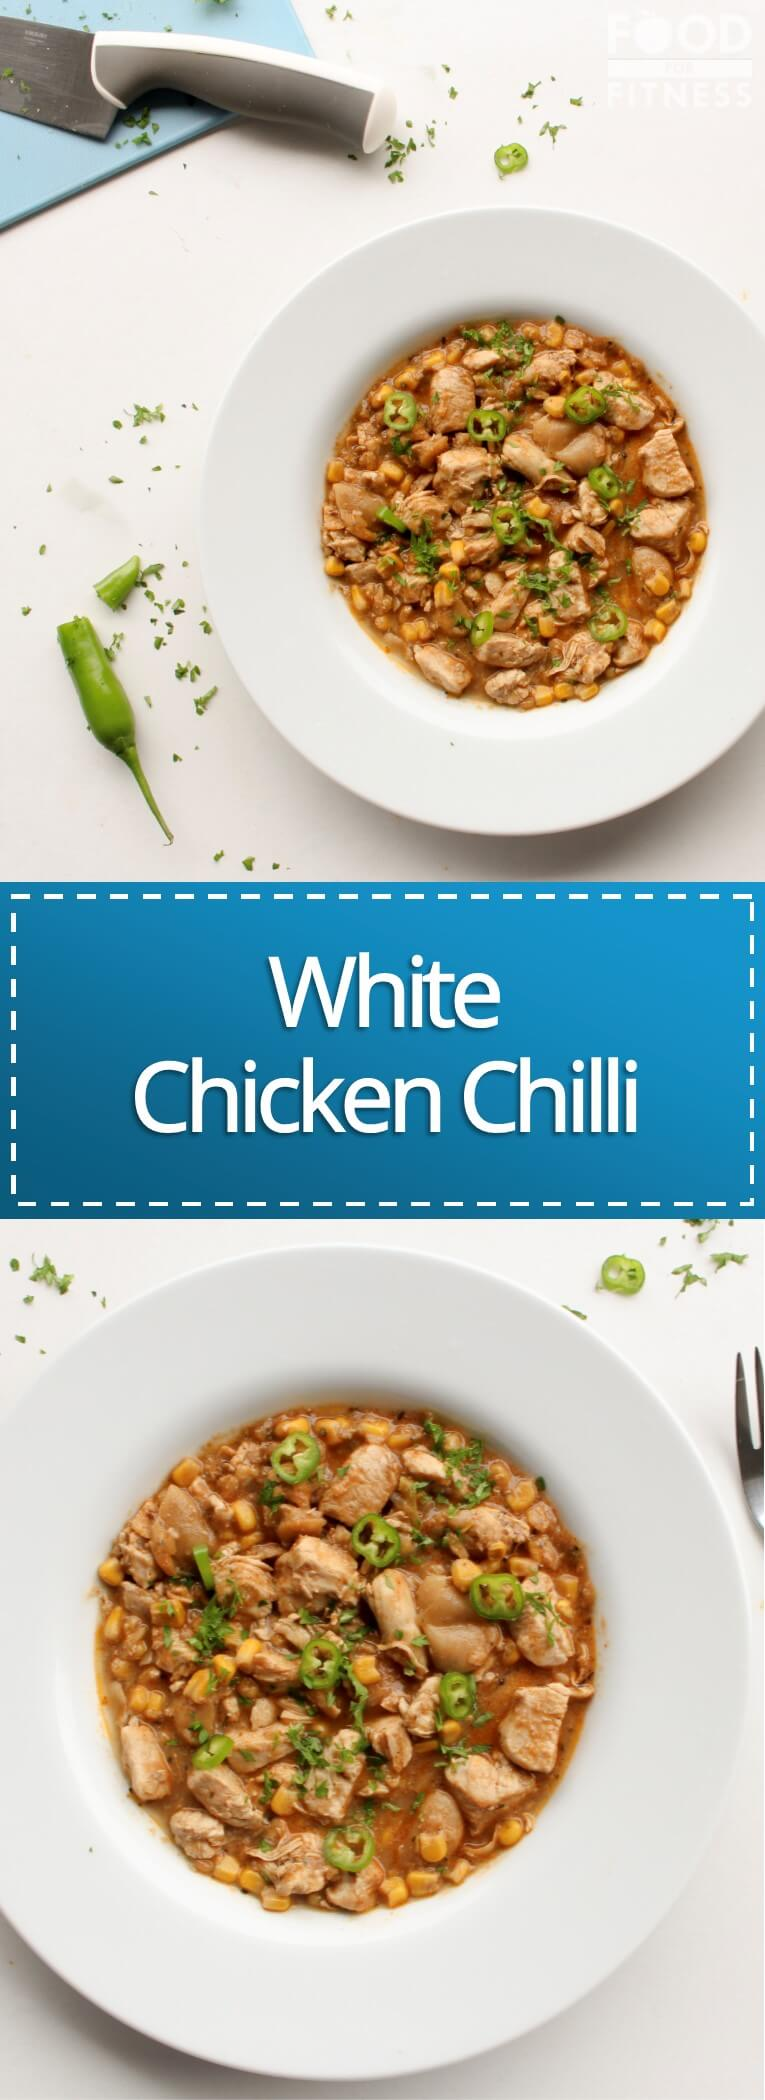 White Chicken Chilli Recipe | FoodForFitness.co.uk